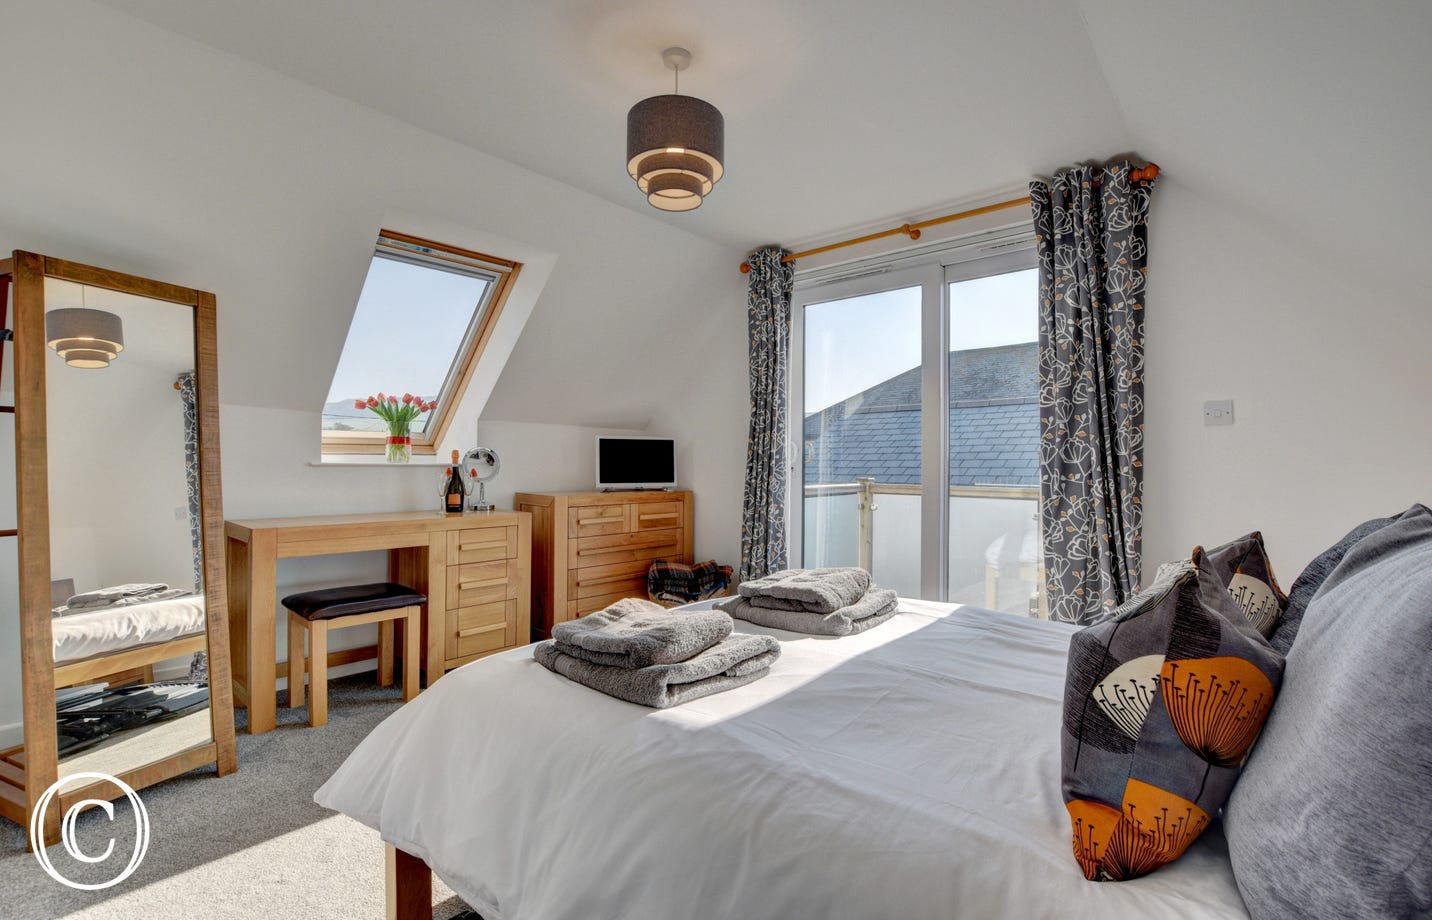 The master double bedroom located on the first floor provides direct access to a decked balcony with fantastic views